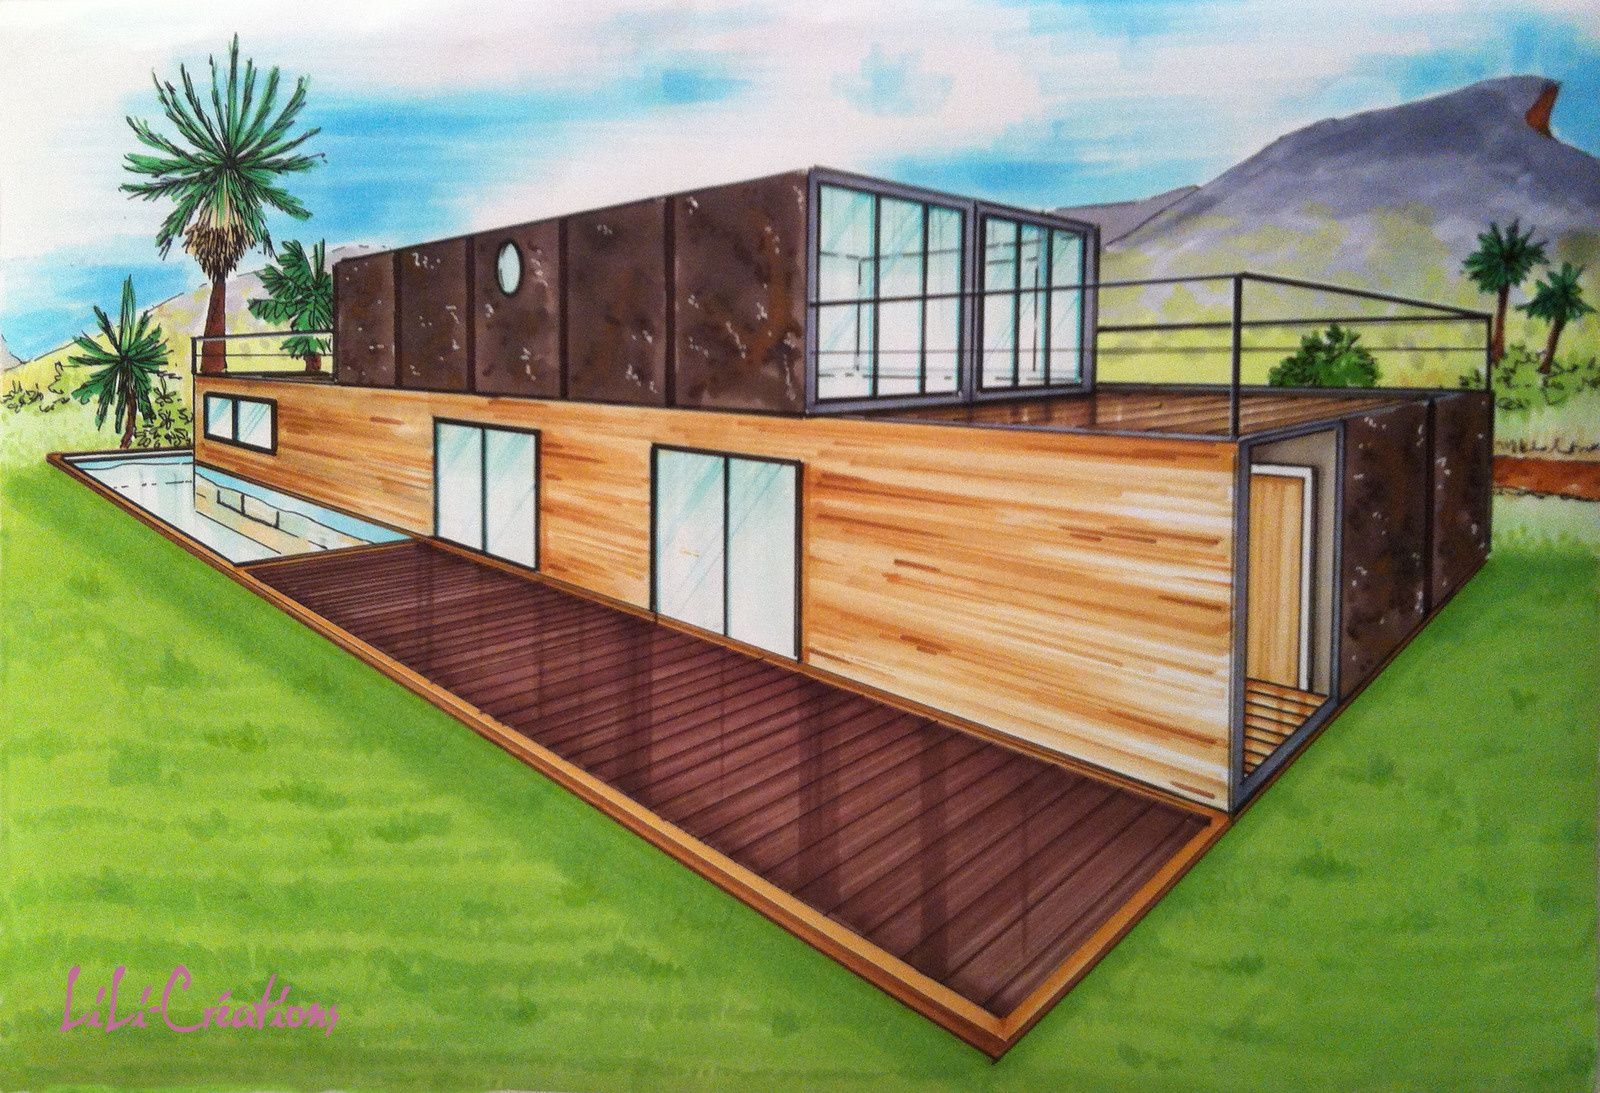 Best Kitchen Gallery: Simple Shipping Container House House Shipping Container Design of Simple Shipping Container House on rachelxblog.com